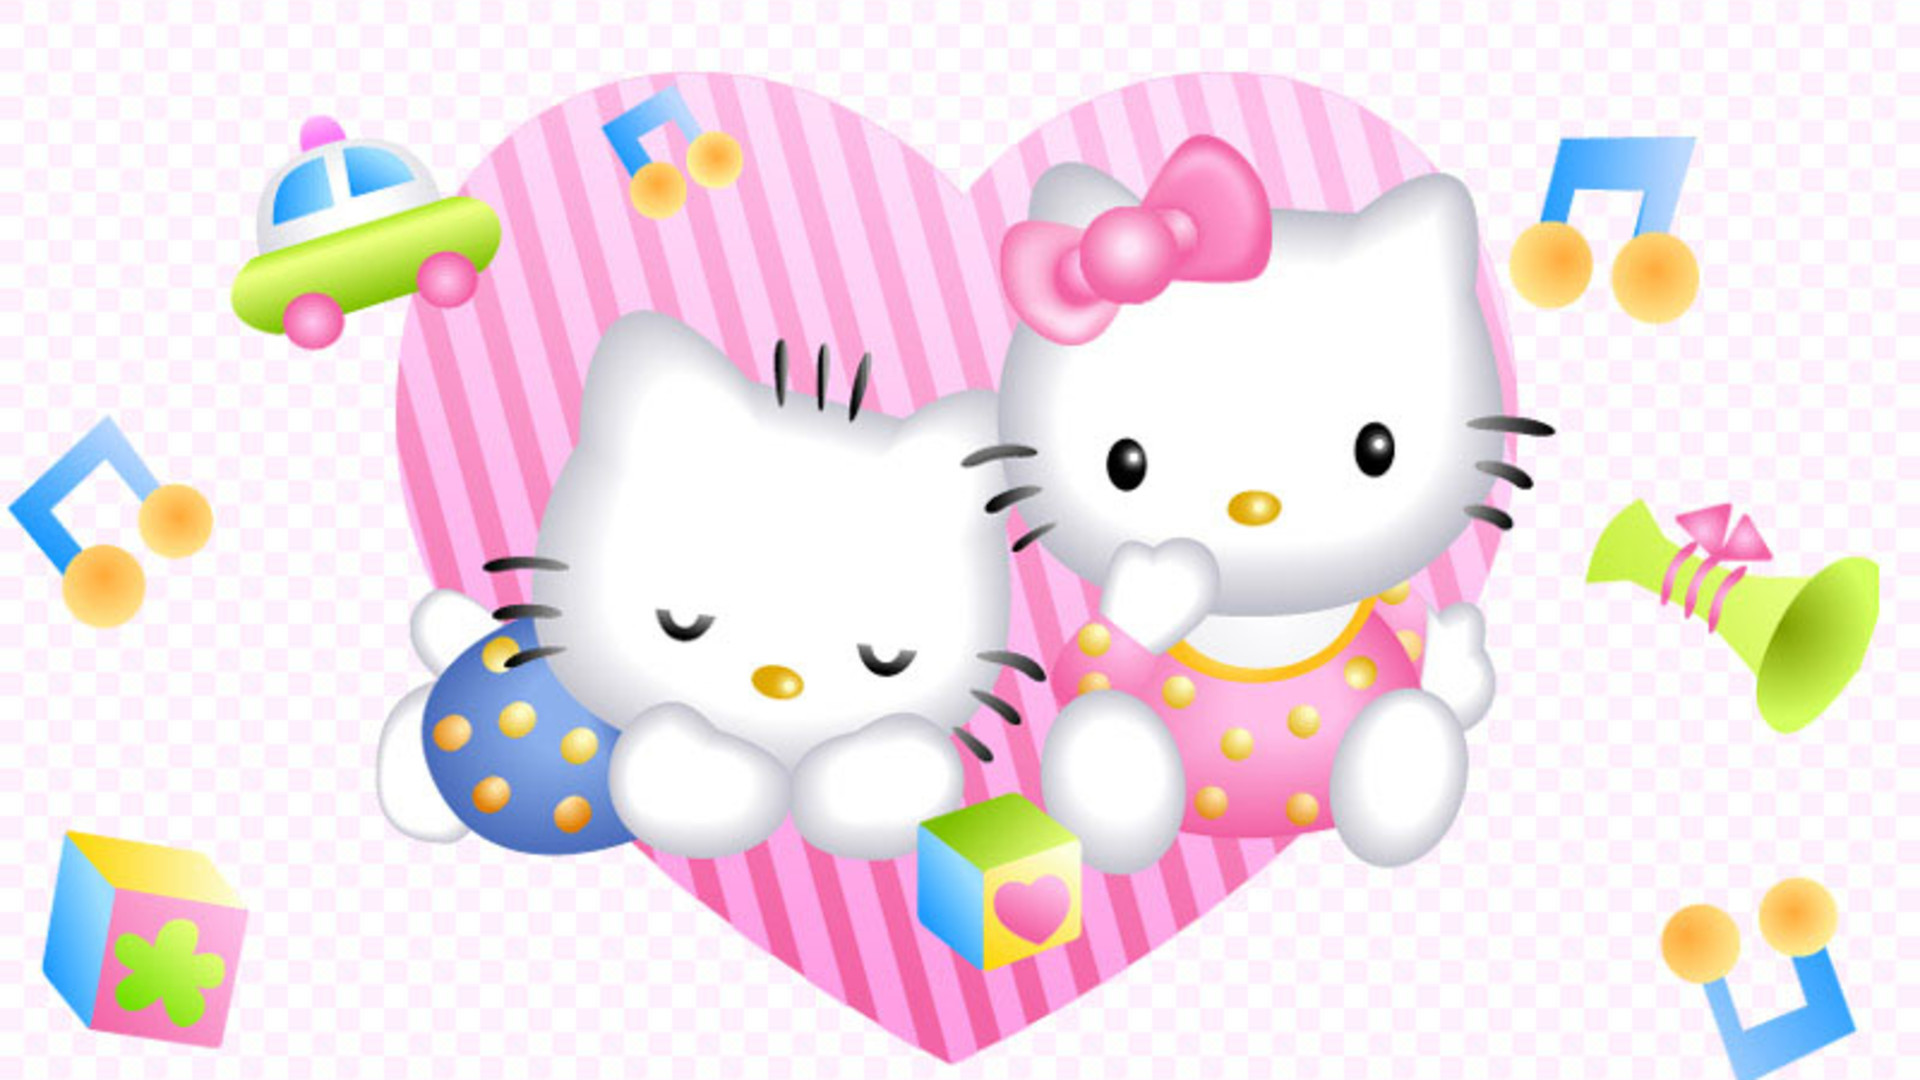 Best Wallpaper Mac Hello Kitty - 968503-hello-kitty-wallpaper-pictures-1920x1080-for-mac  Perfect Image Reference_995114.jpg